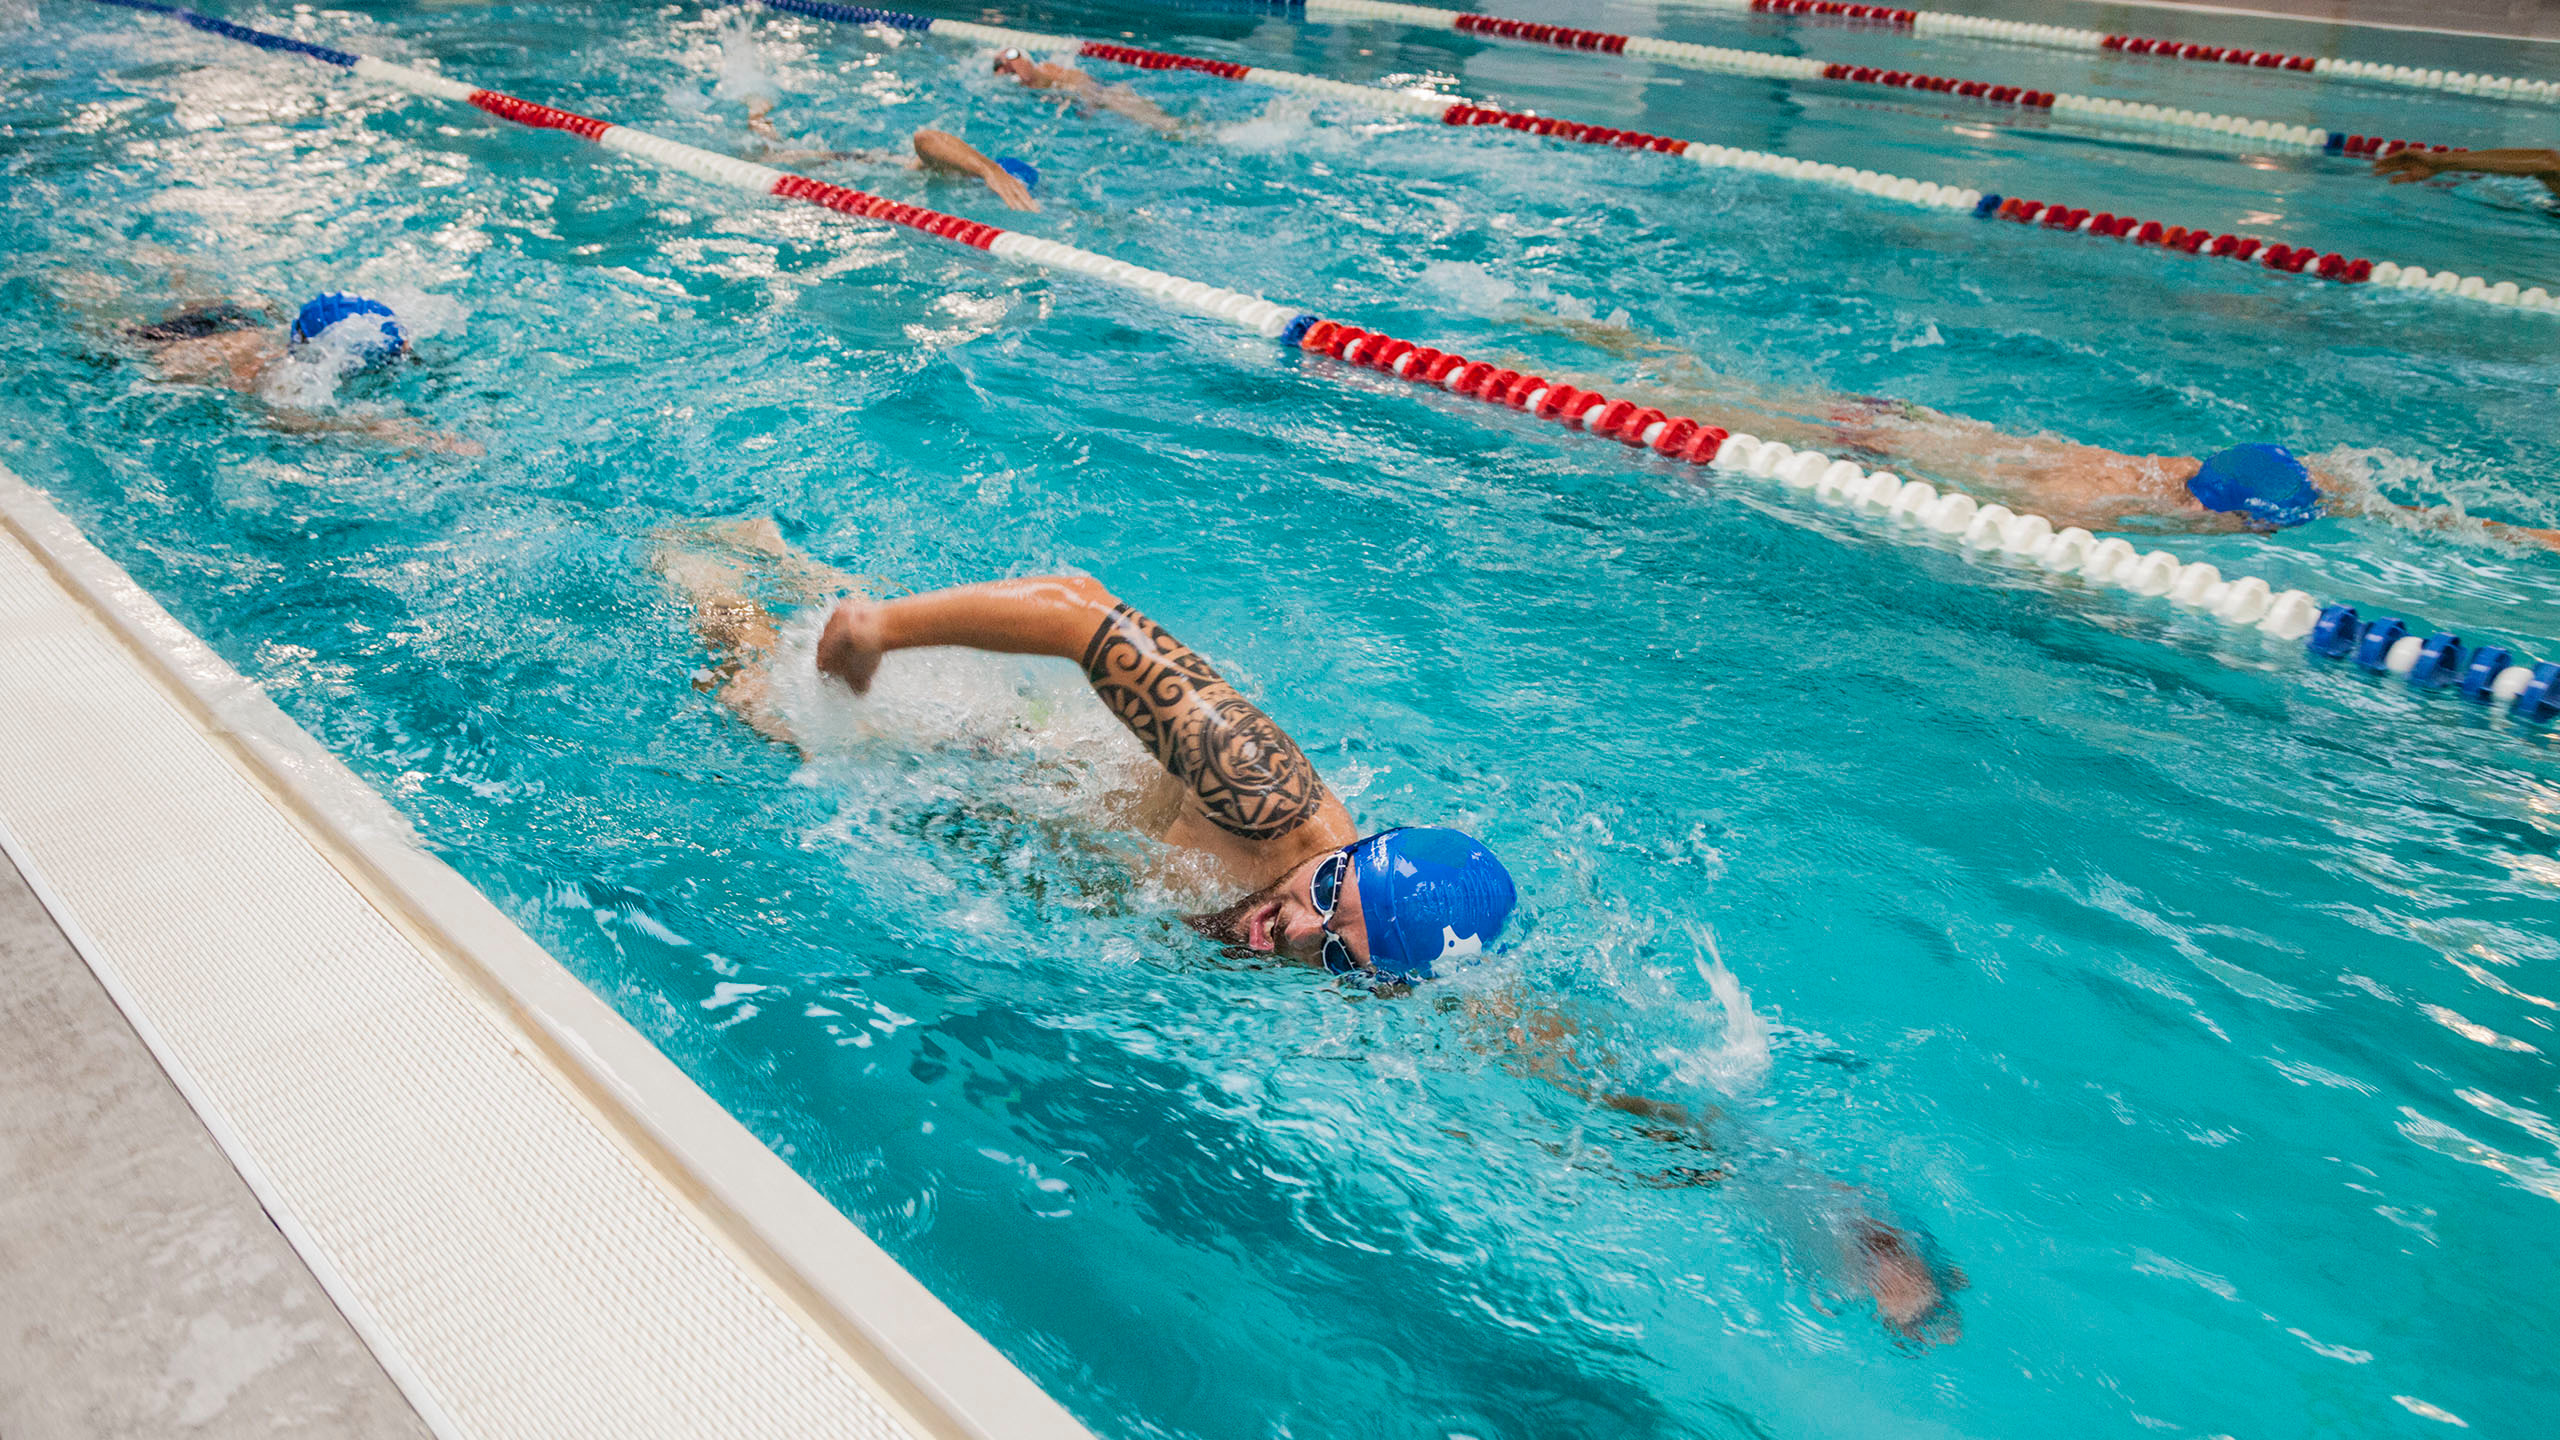 Florence Experience – Andrea & Matteo, The Triathletes 3